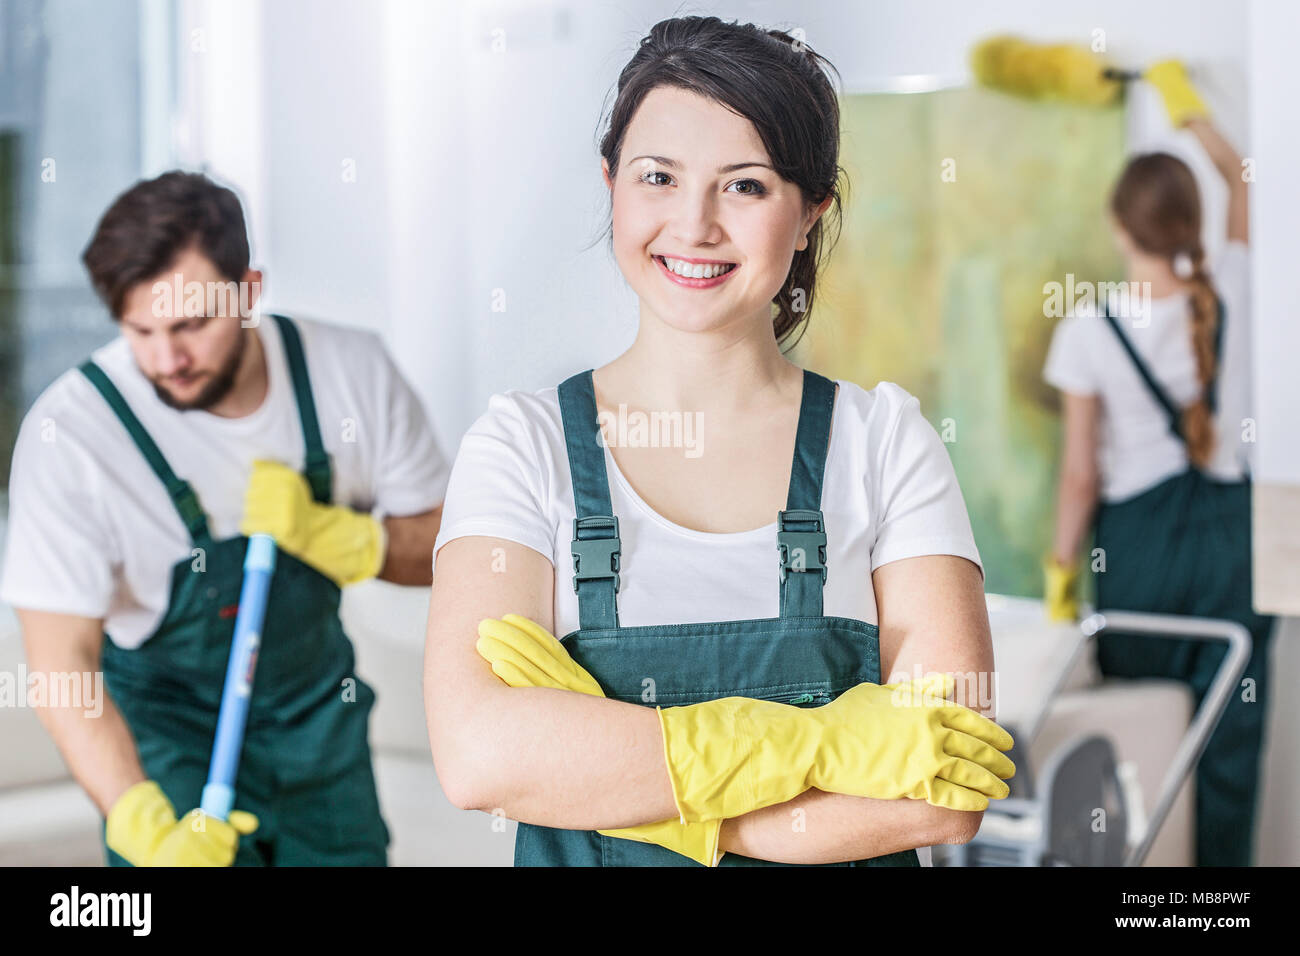 Smiling cleaning lady in a green uniform and yellow rubber gloves at work - Stock Image